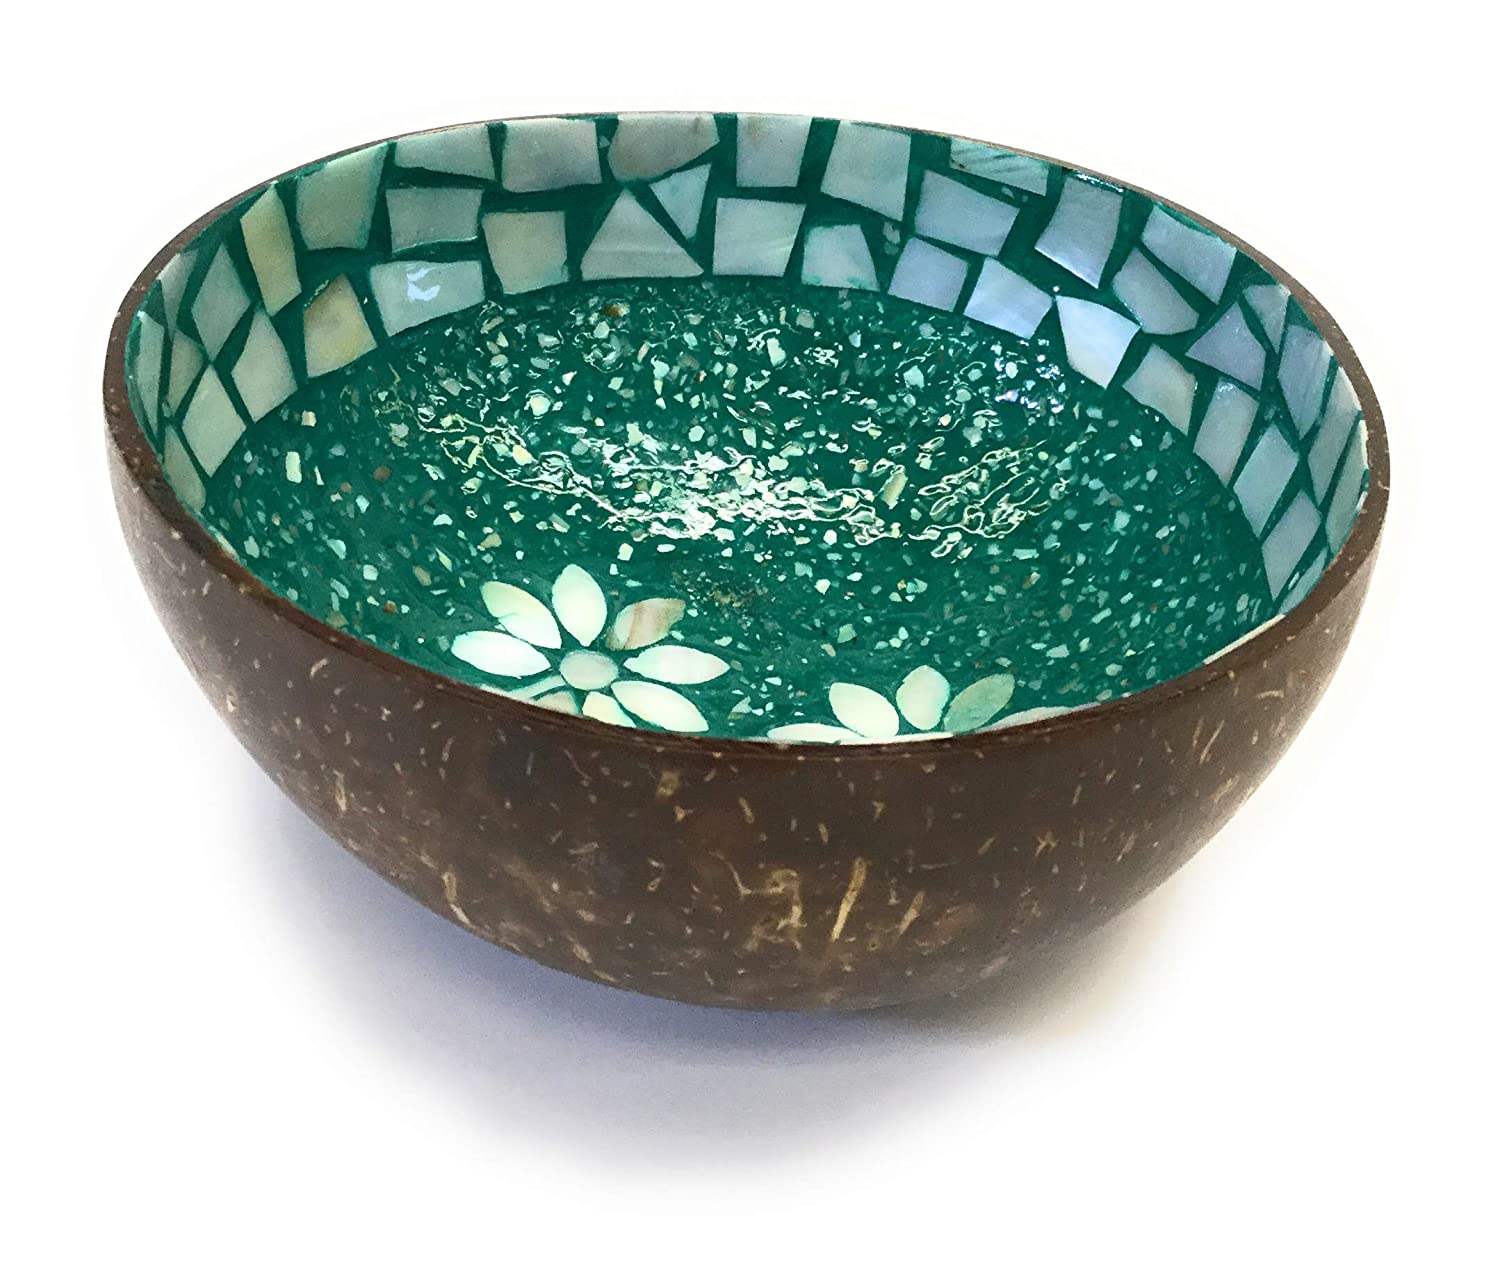 CocoVN Beautiful Decorative Handmade Vietnamese Lacquered Natural Coconut Shell Bowls Flower Mother of Pear Inlaid Green